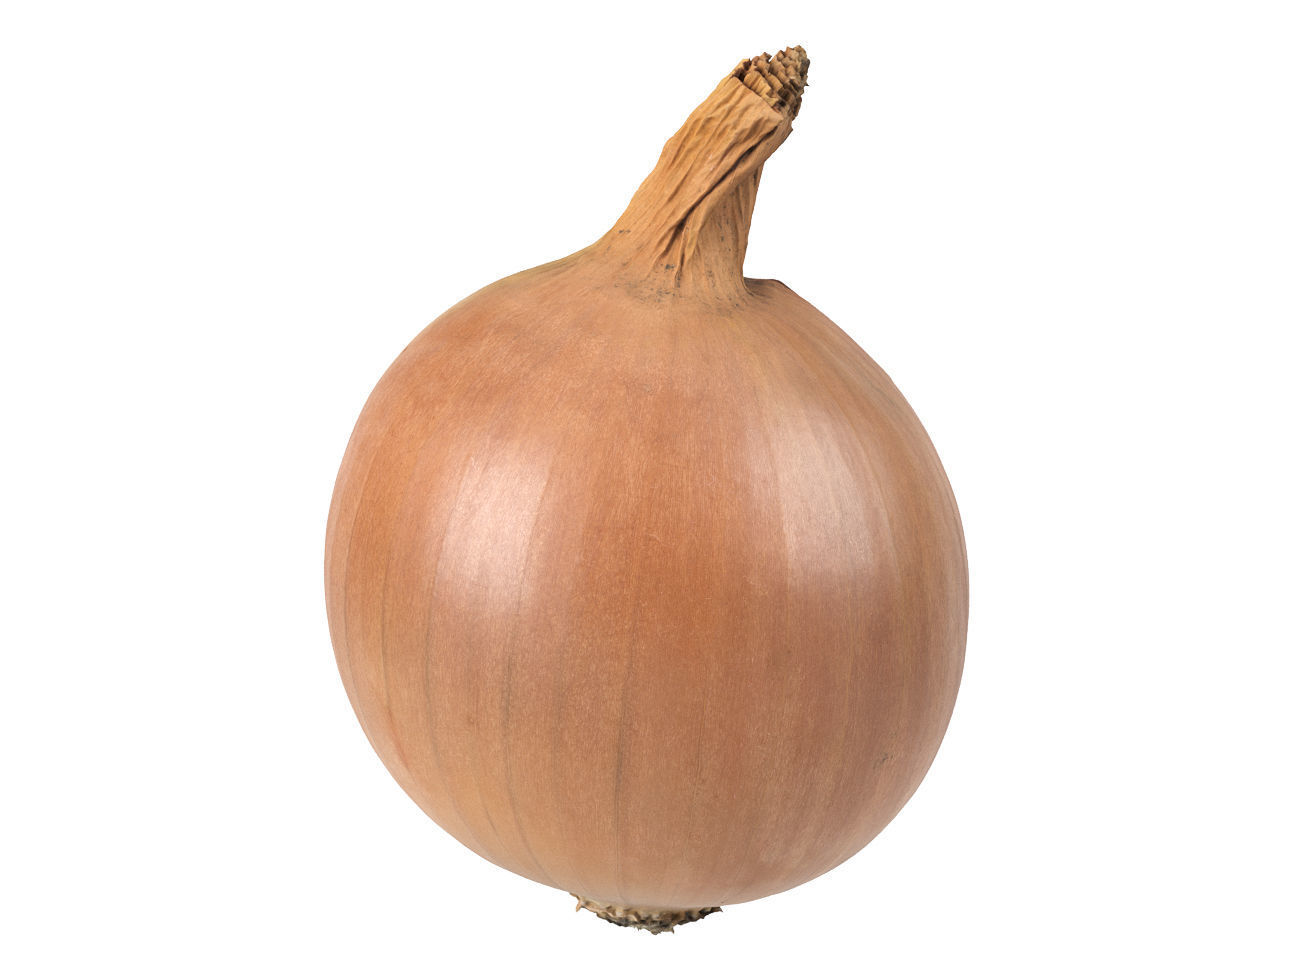 Photorealistic Onion 3D Scan